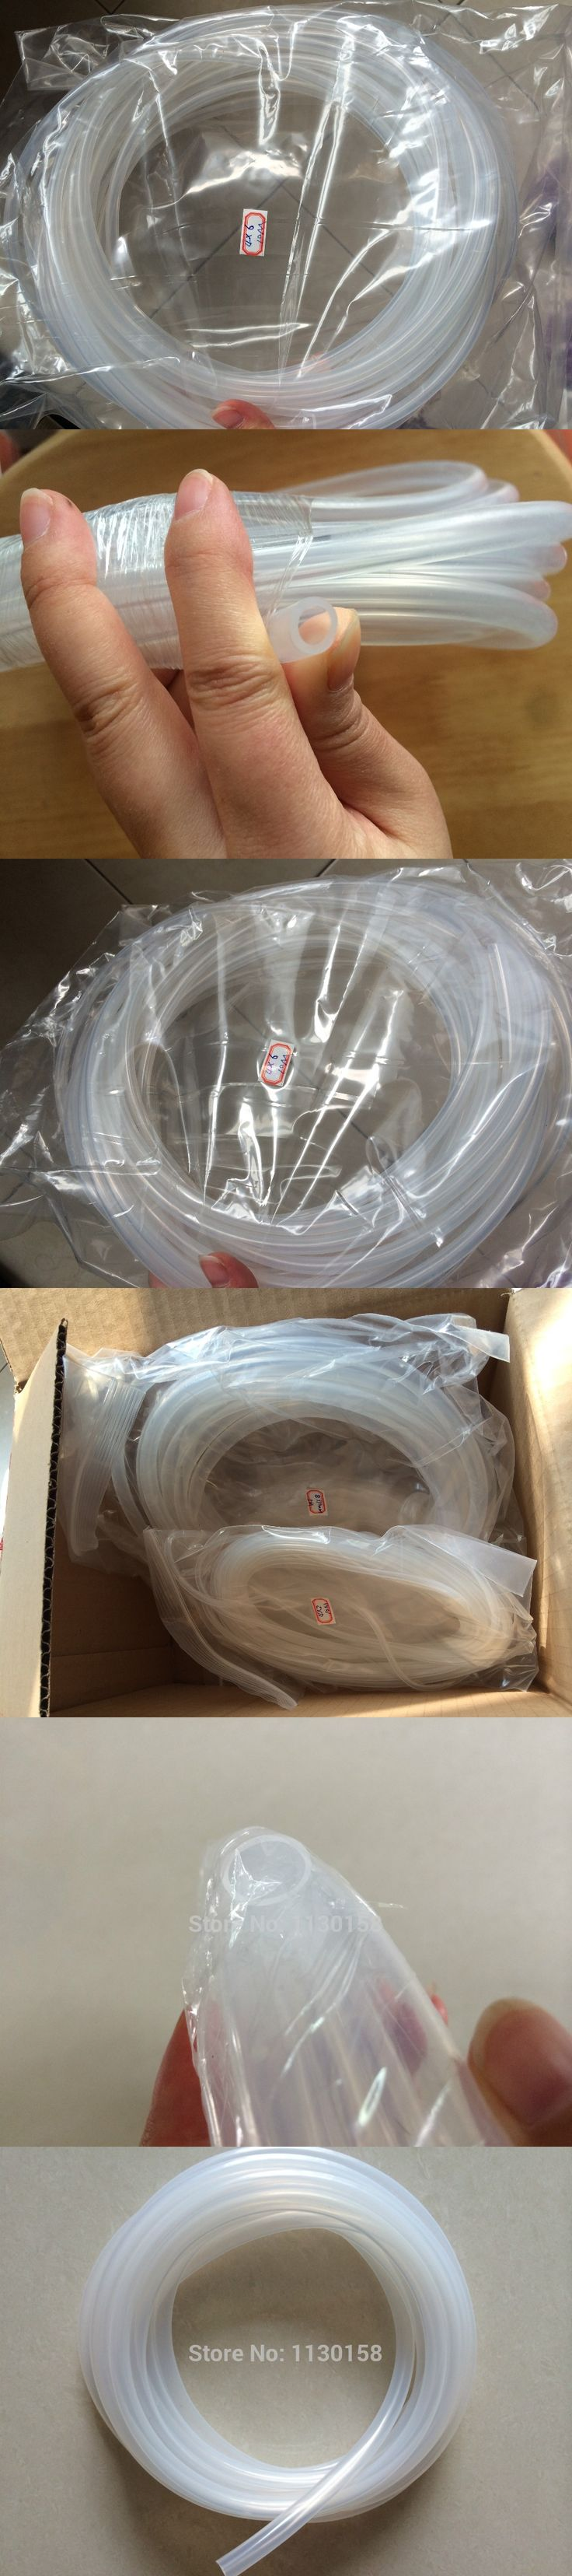 6X8mm ,5 Meters, Transparent Silicone Rubber Tube Food Drink Connecting Silicone Rubber Tube